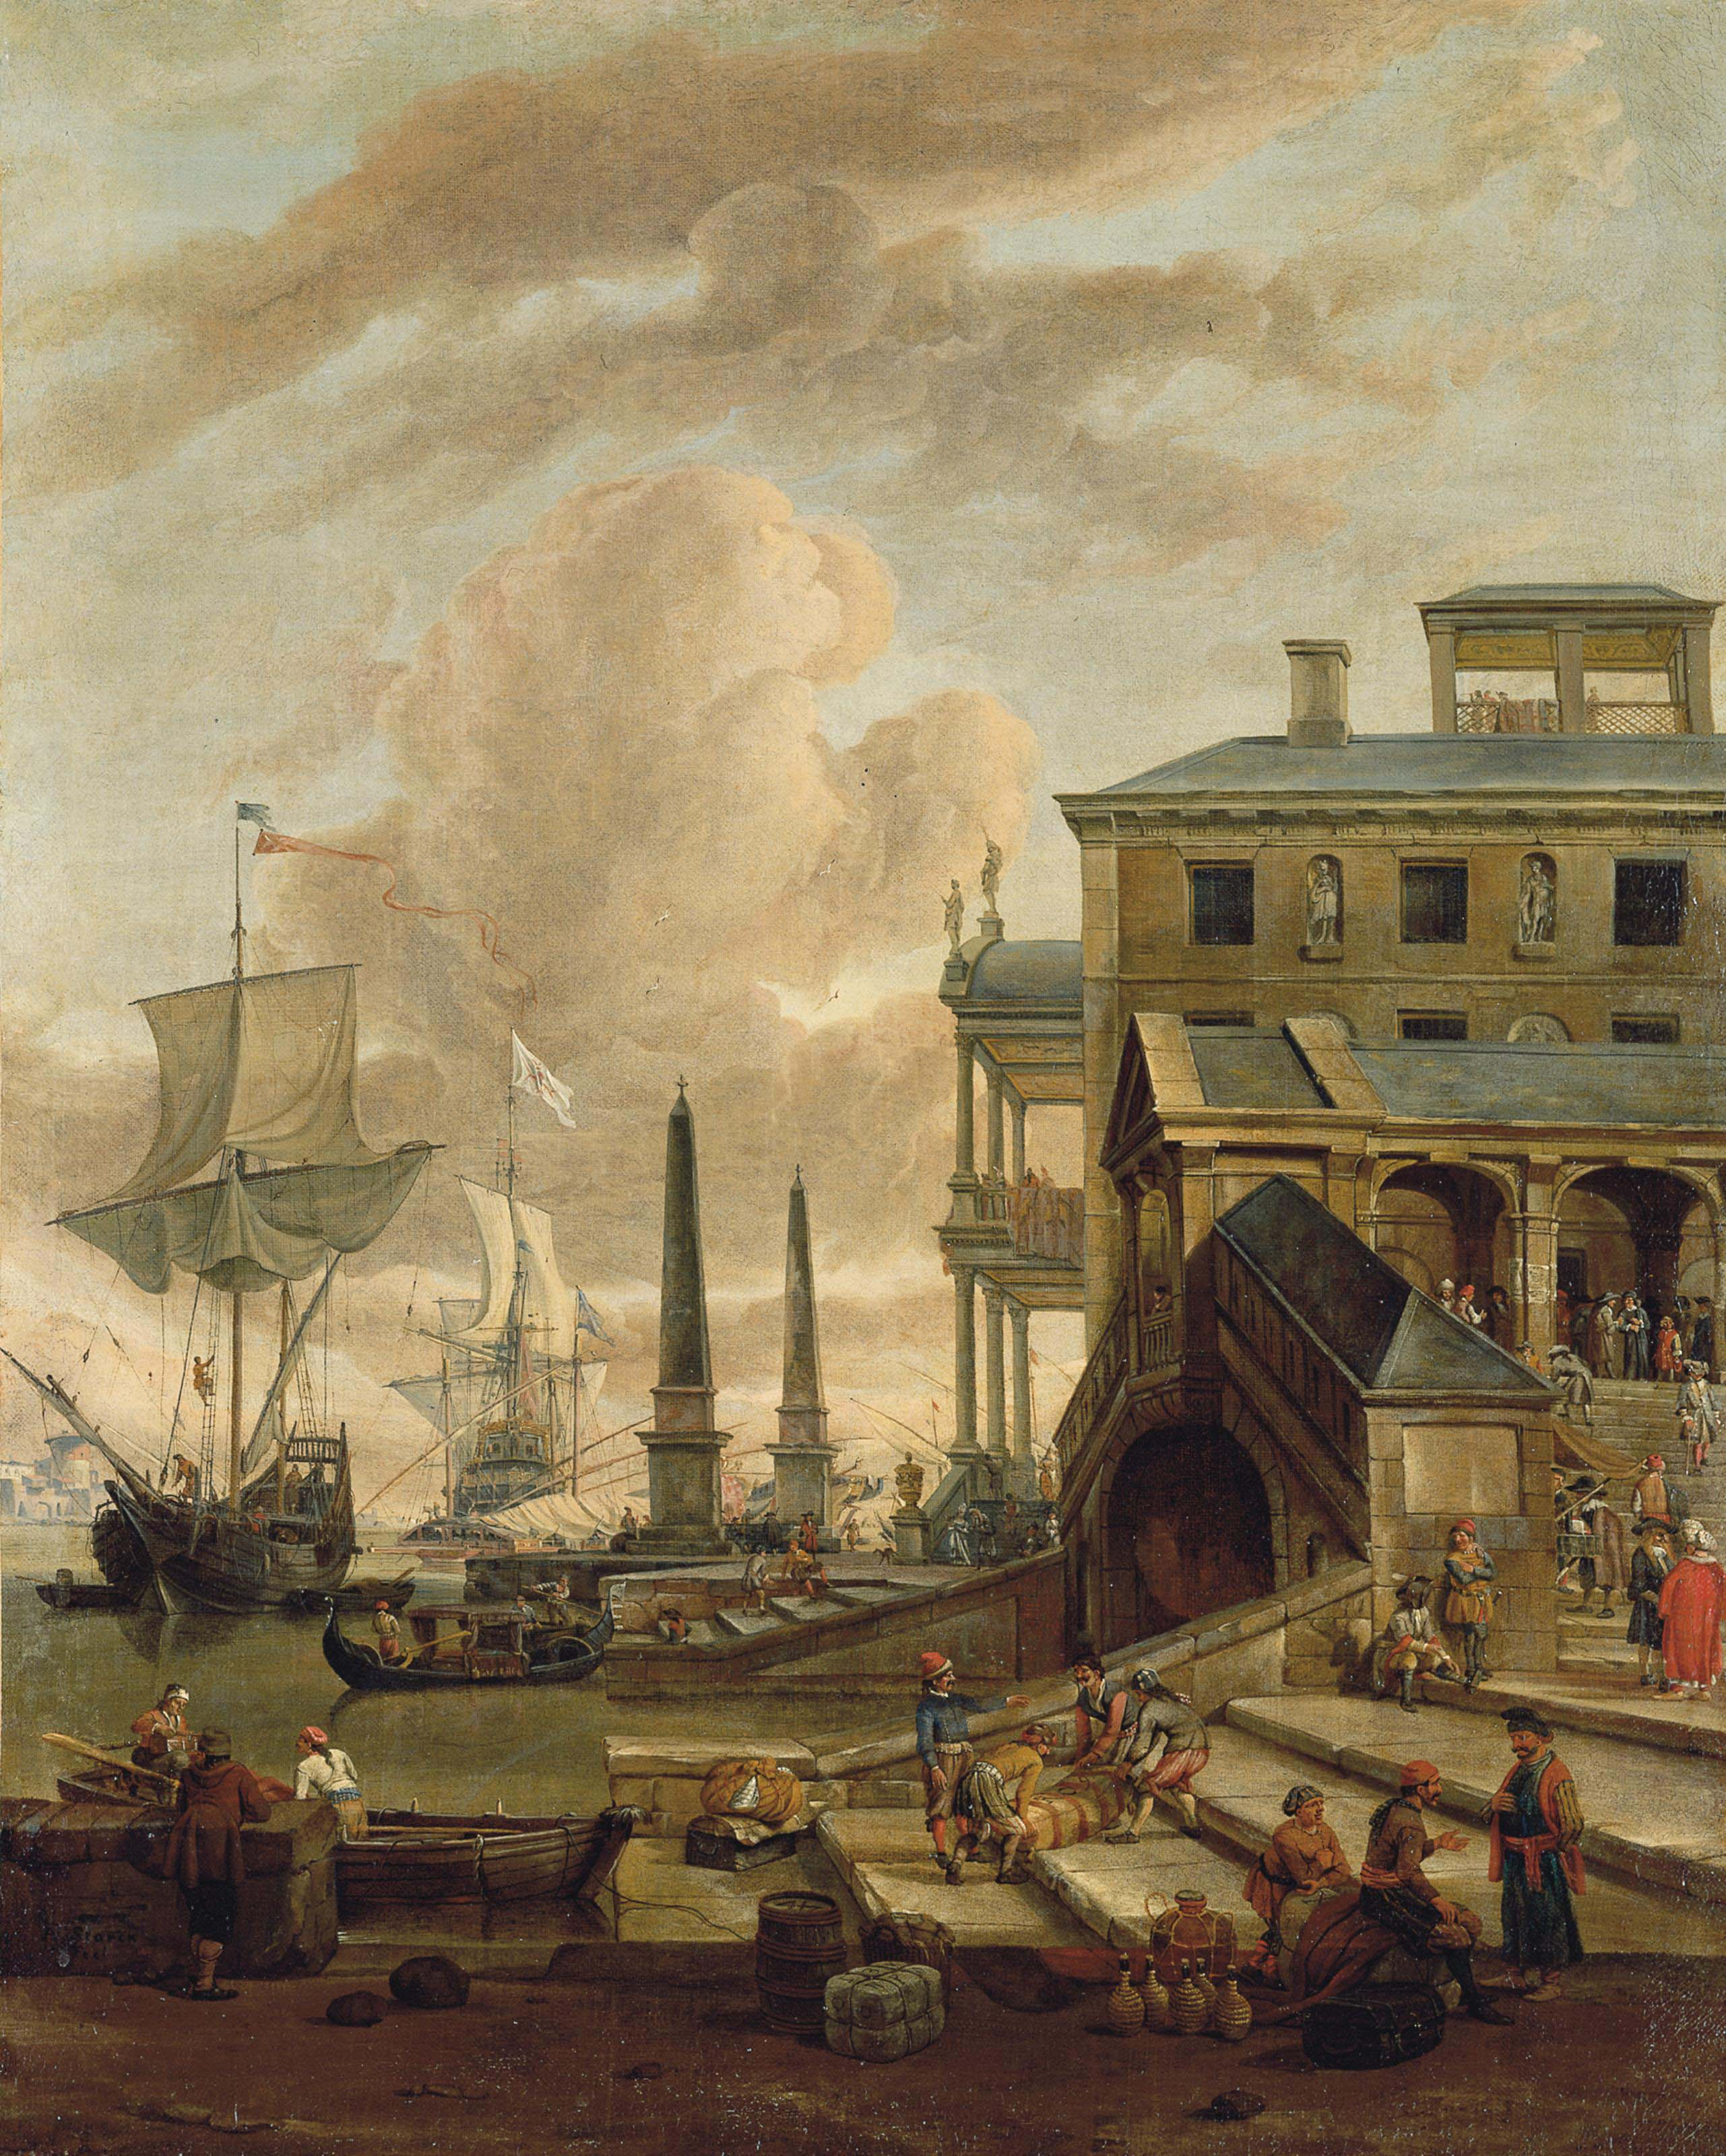 A capriccio of a Mediterranean harbour with stevedores, orientals and elegant figures, with ships beyond